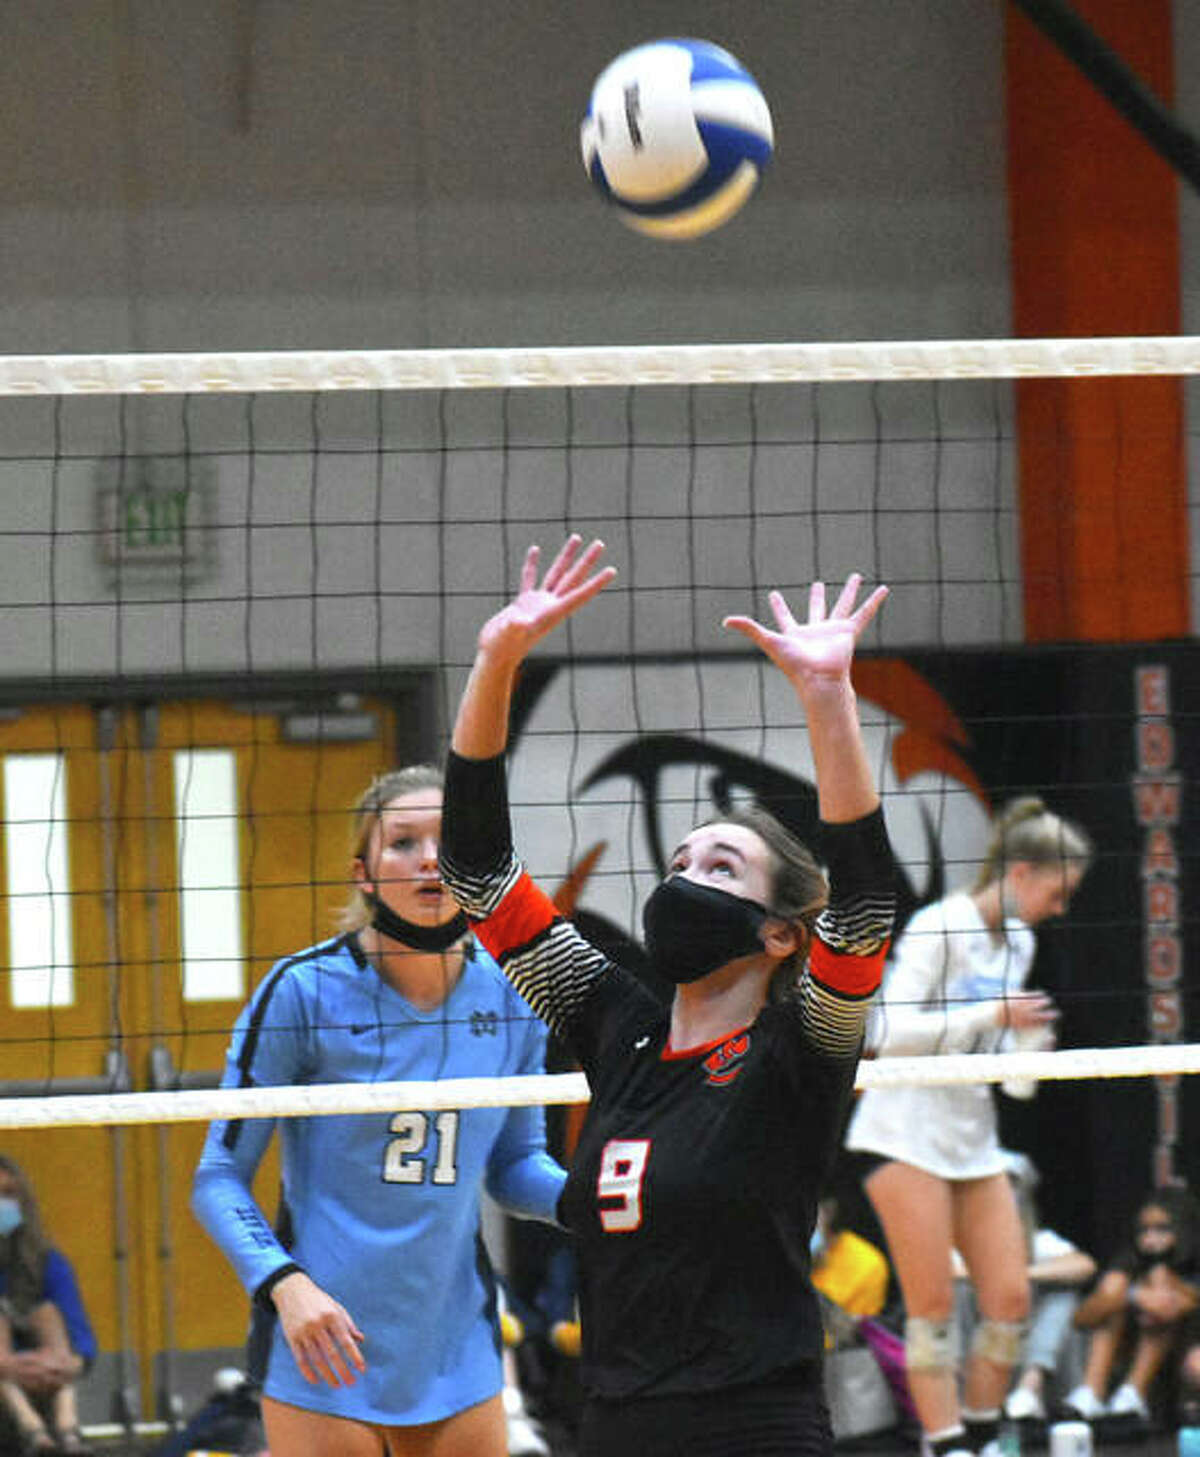 Edwardsville's Madison Vieth sets a pass against Mater Dei in the semifinals of the Tiger Classic on Saturday.